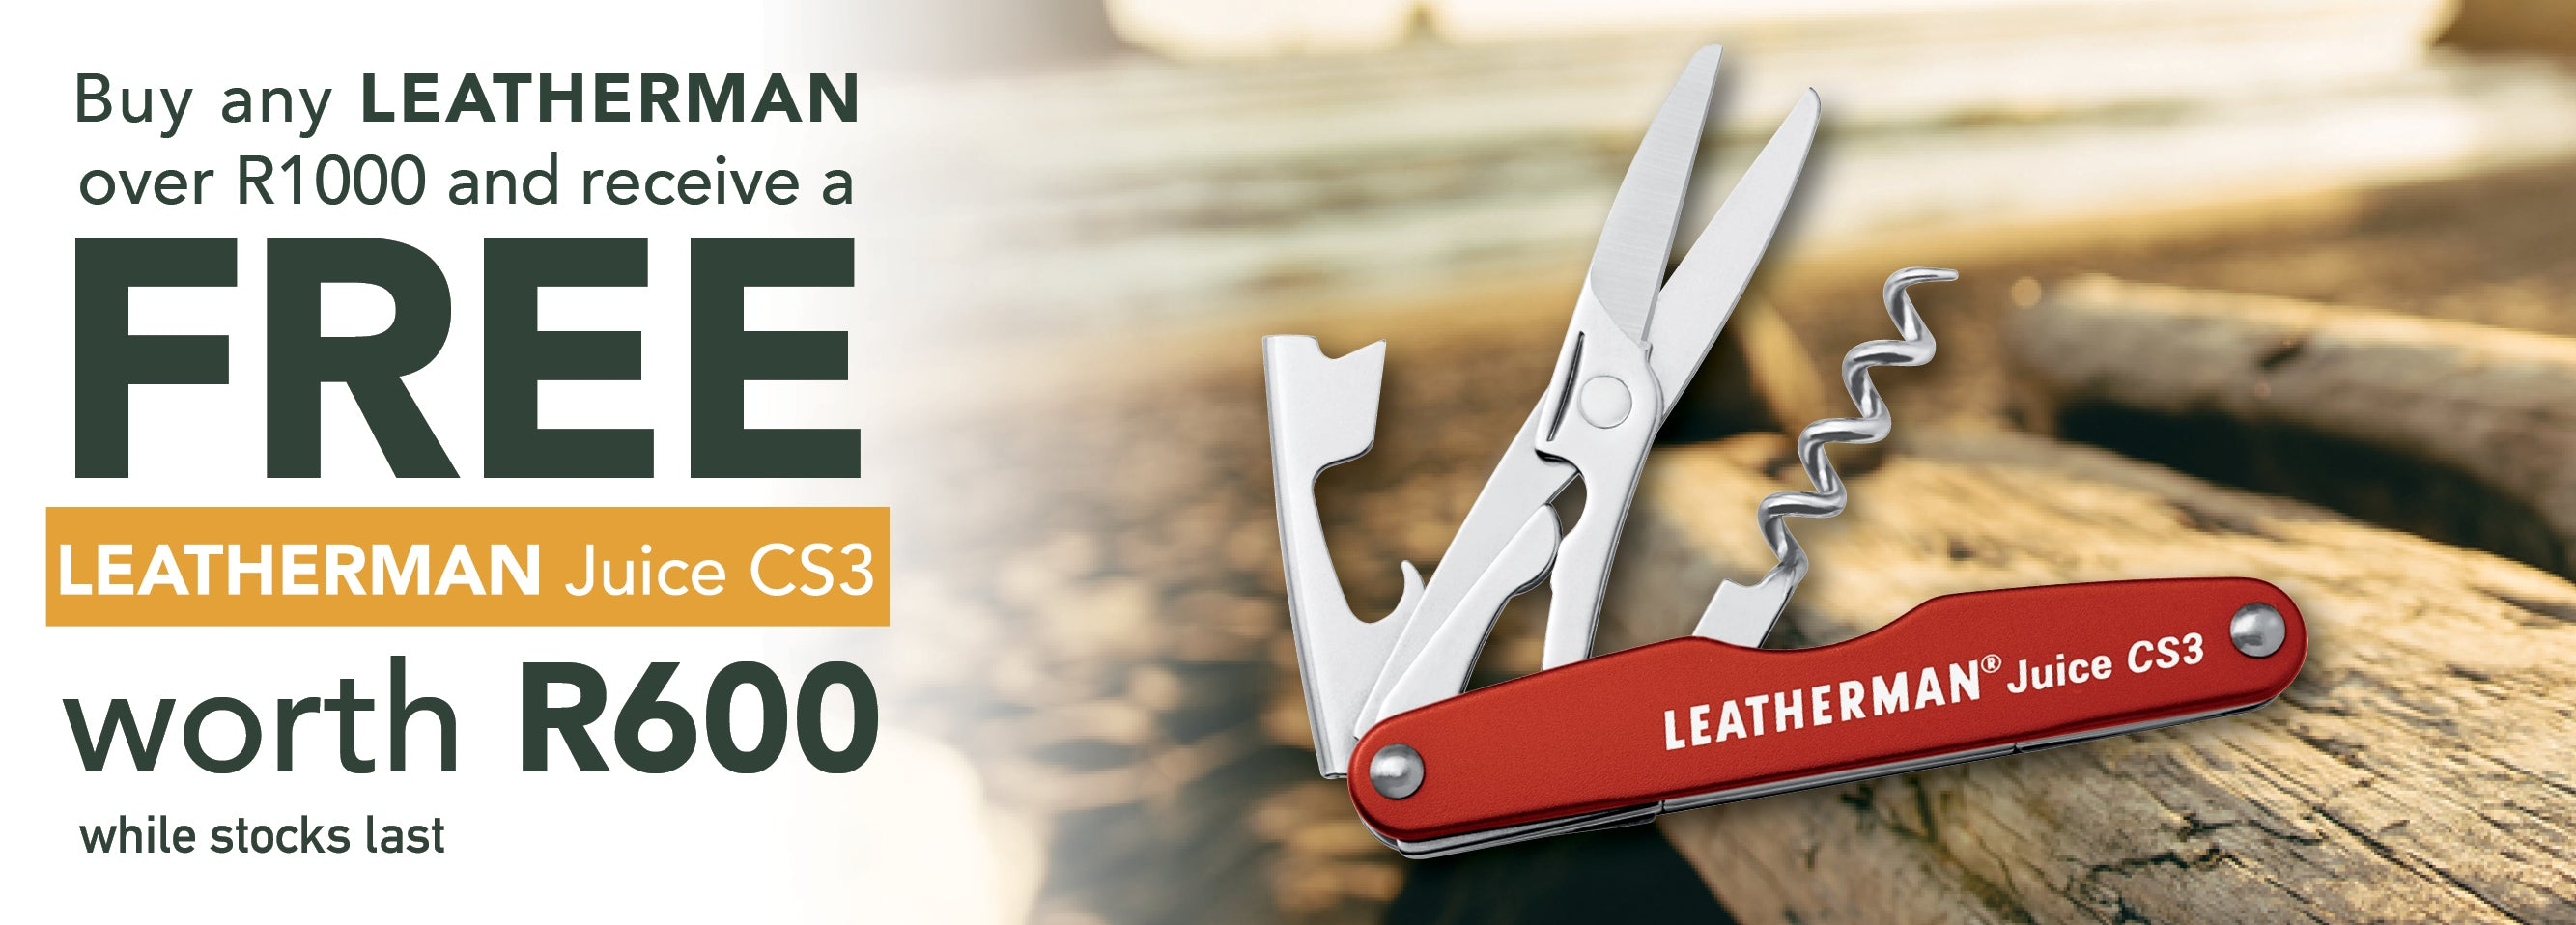 Leatherman fathers day banner